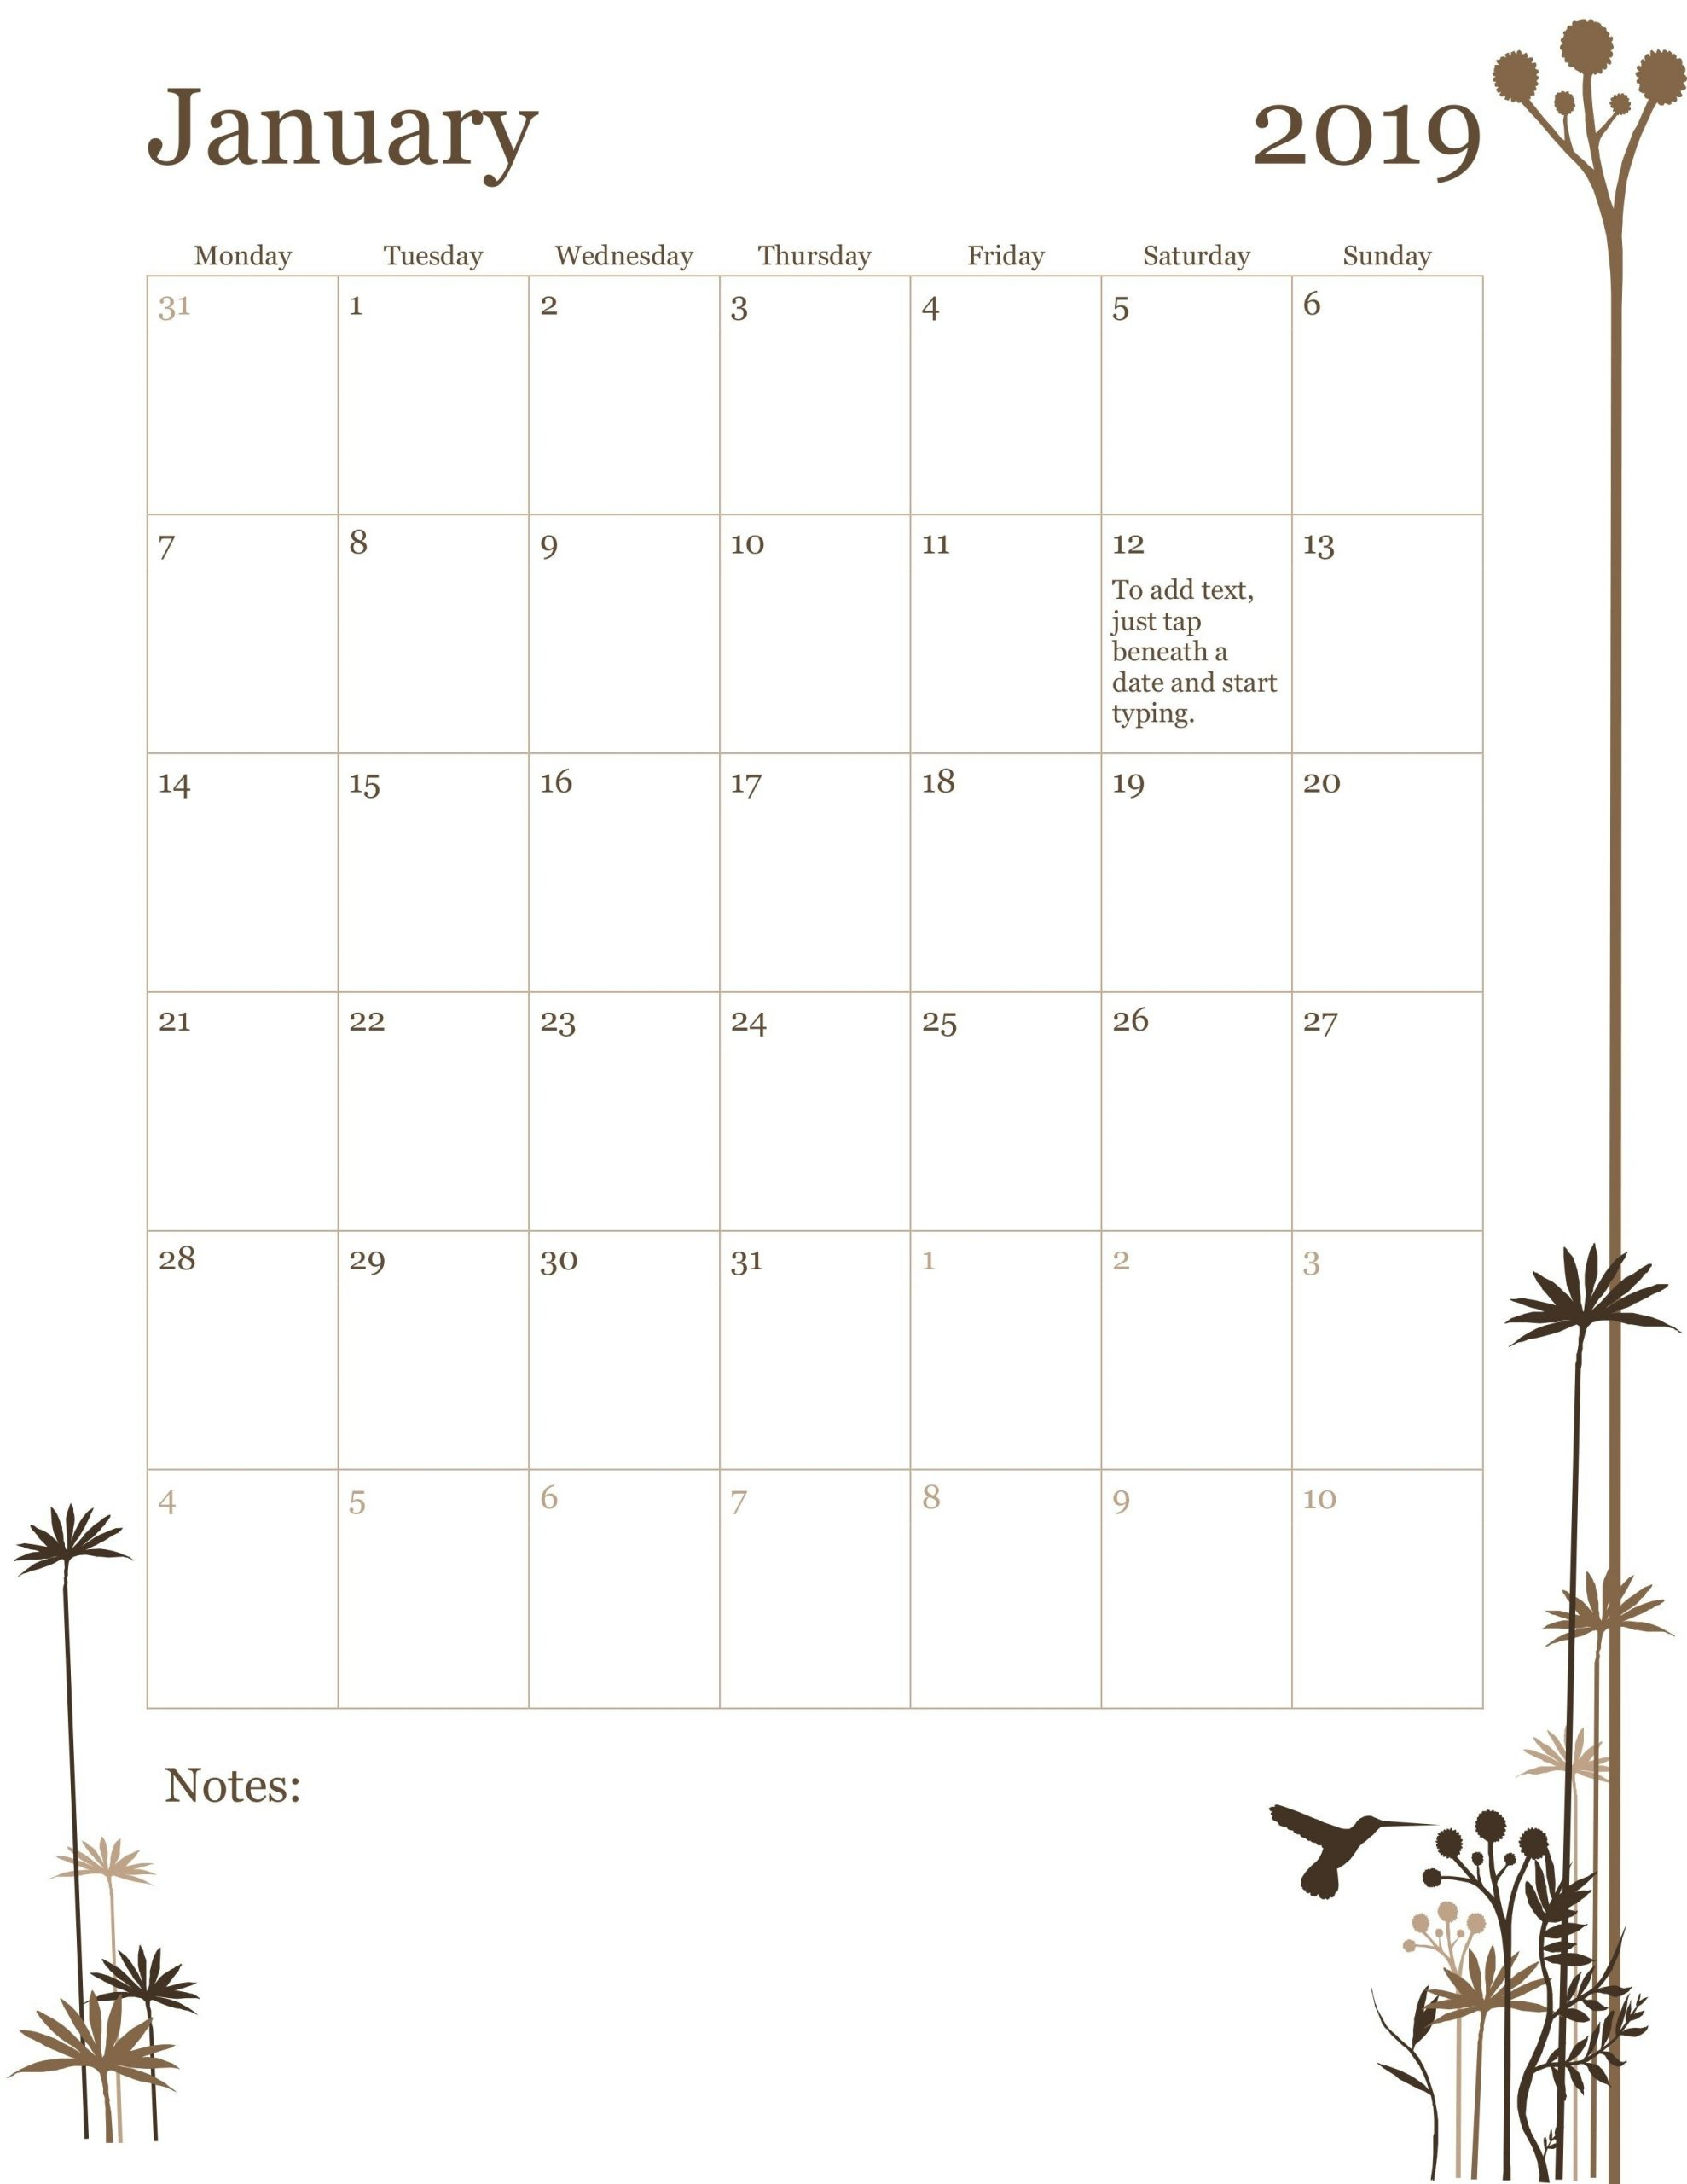 Monday Friday Monthly Calendar Template   Calendar Mon Fri Calendar Template